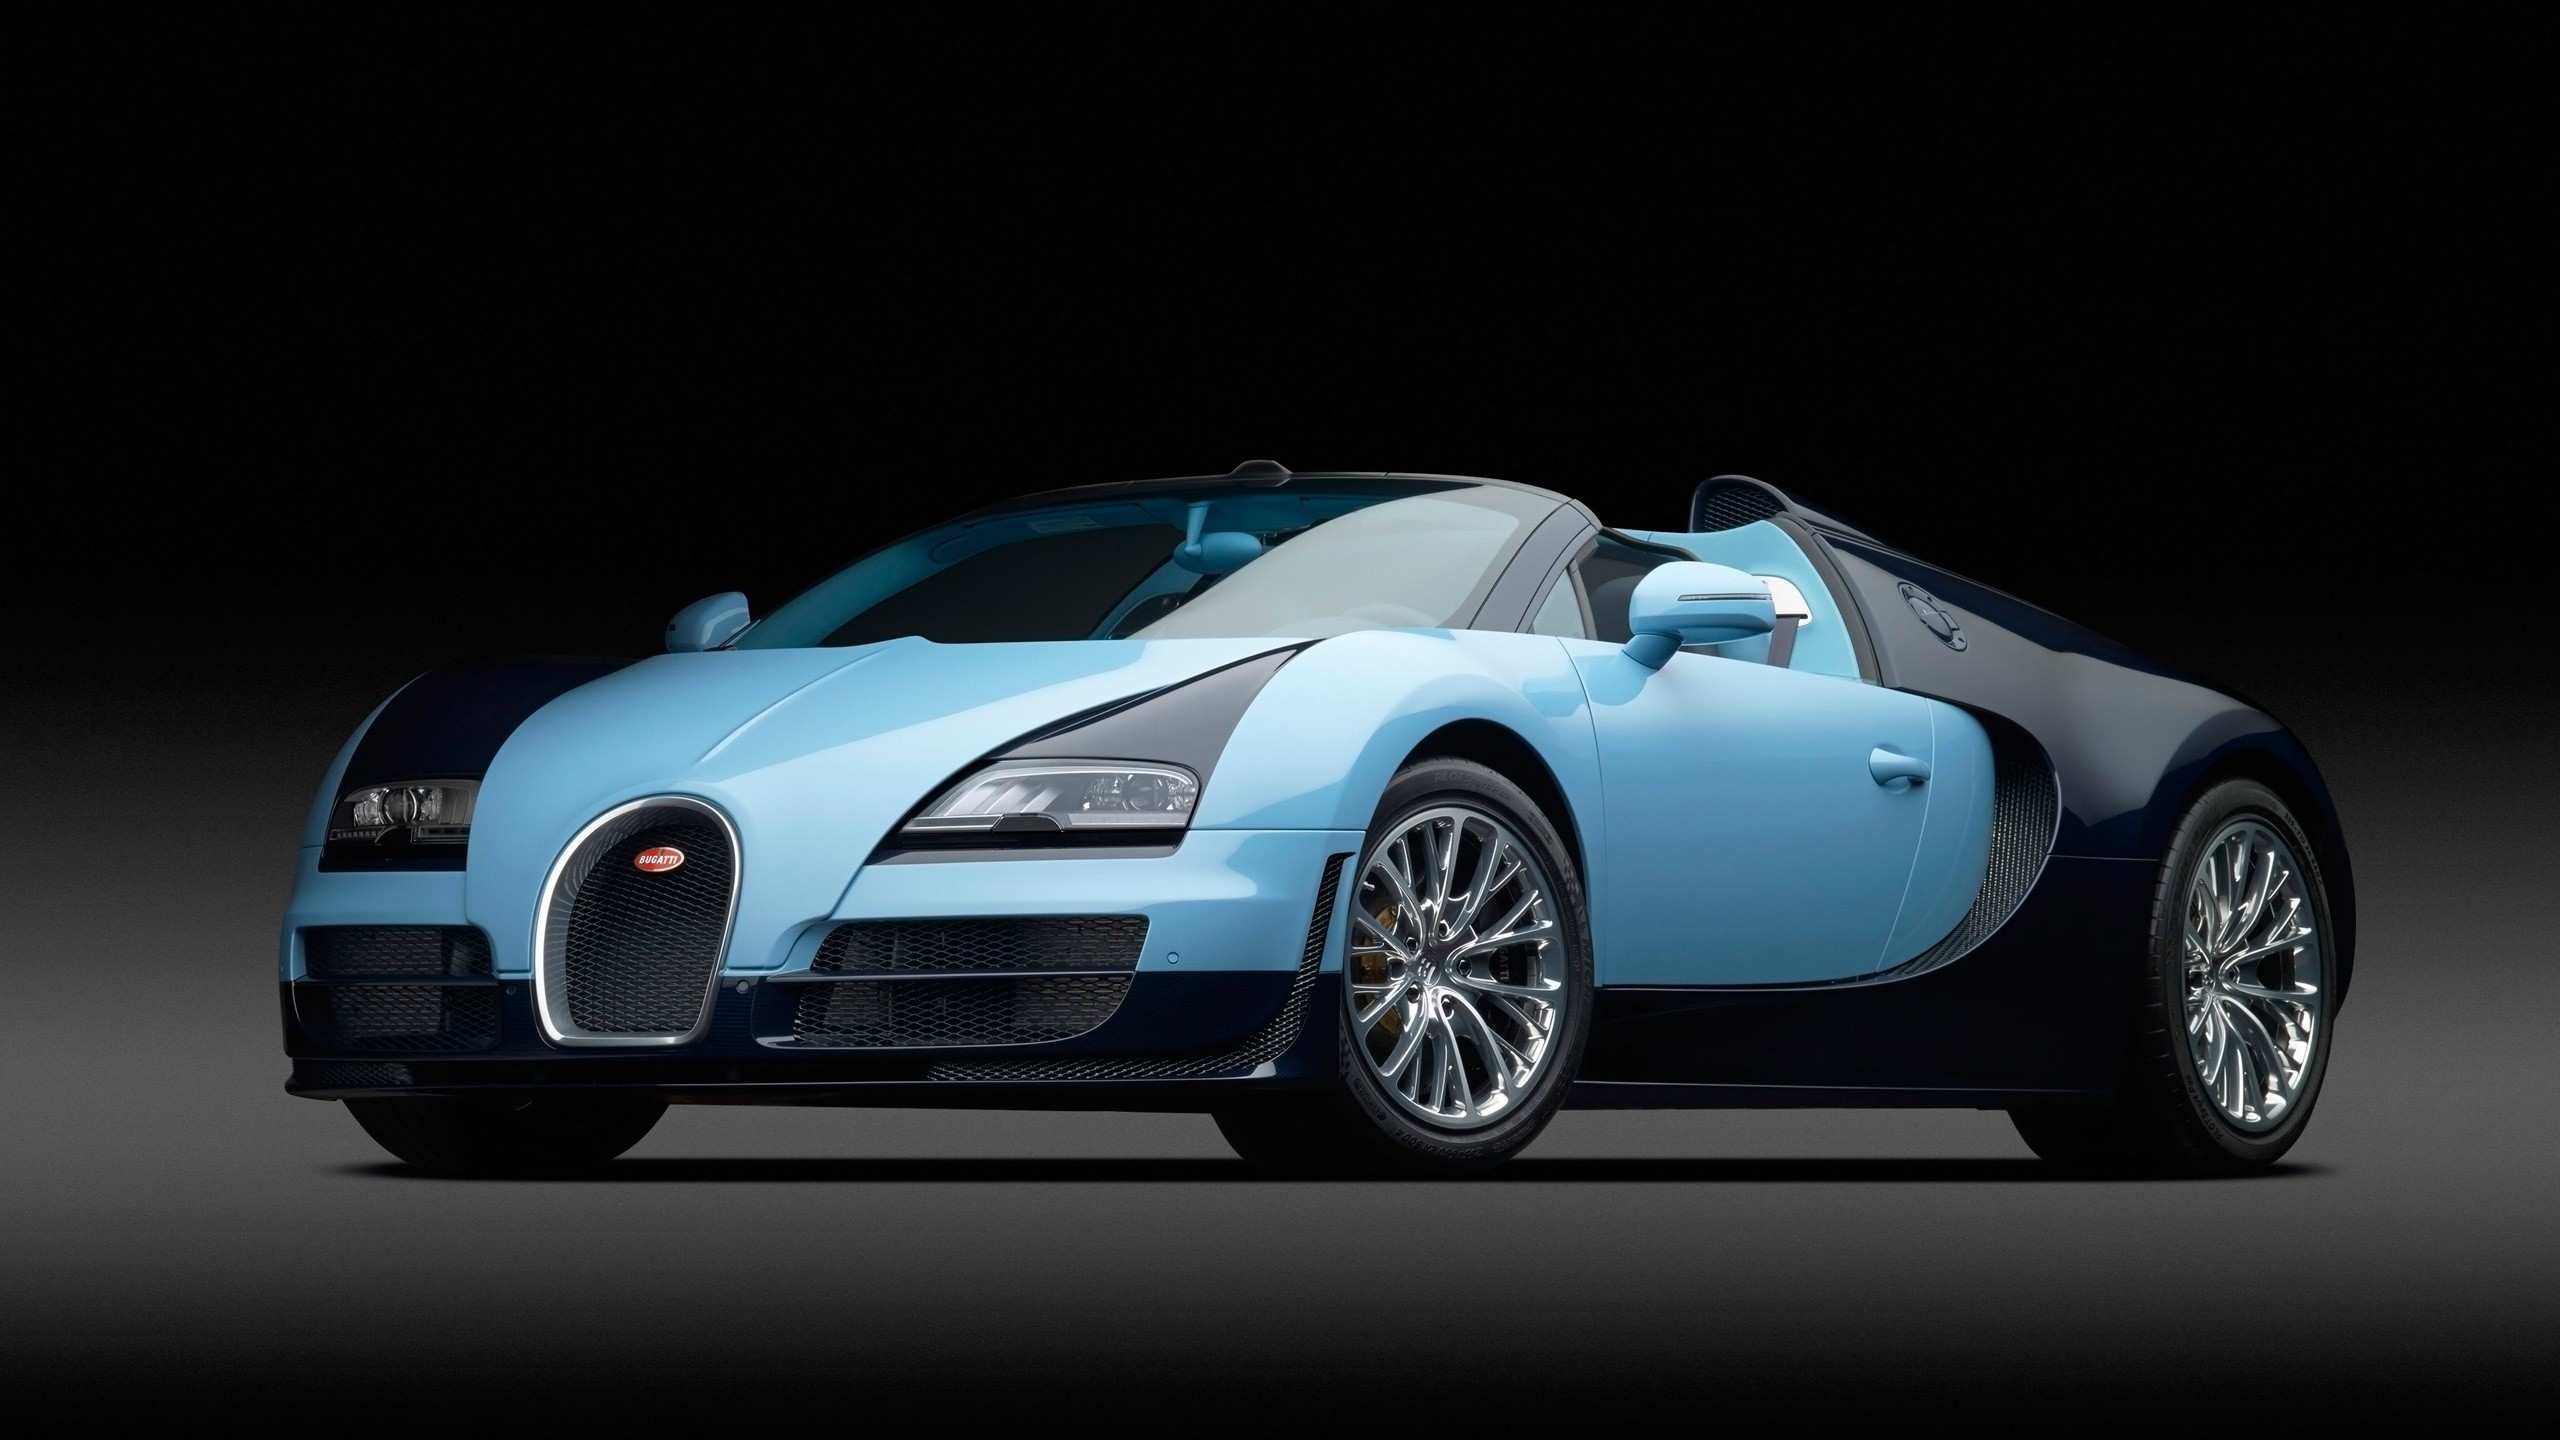 bugatti veyron grand sport vitesse legend jean pierre. Black Bedroom Furniture Sets. Home Design Ideas